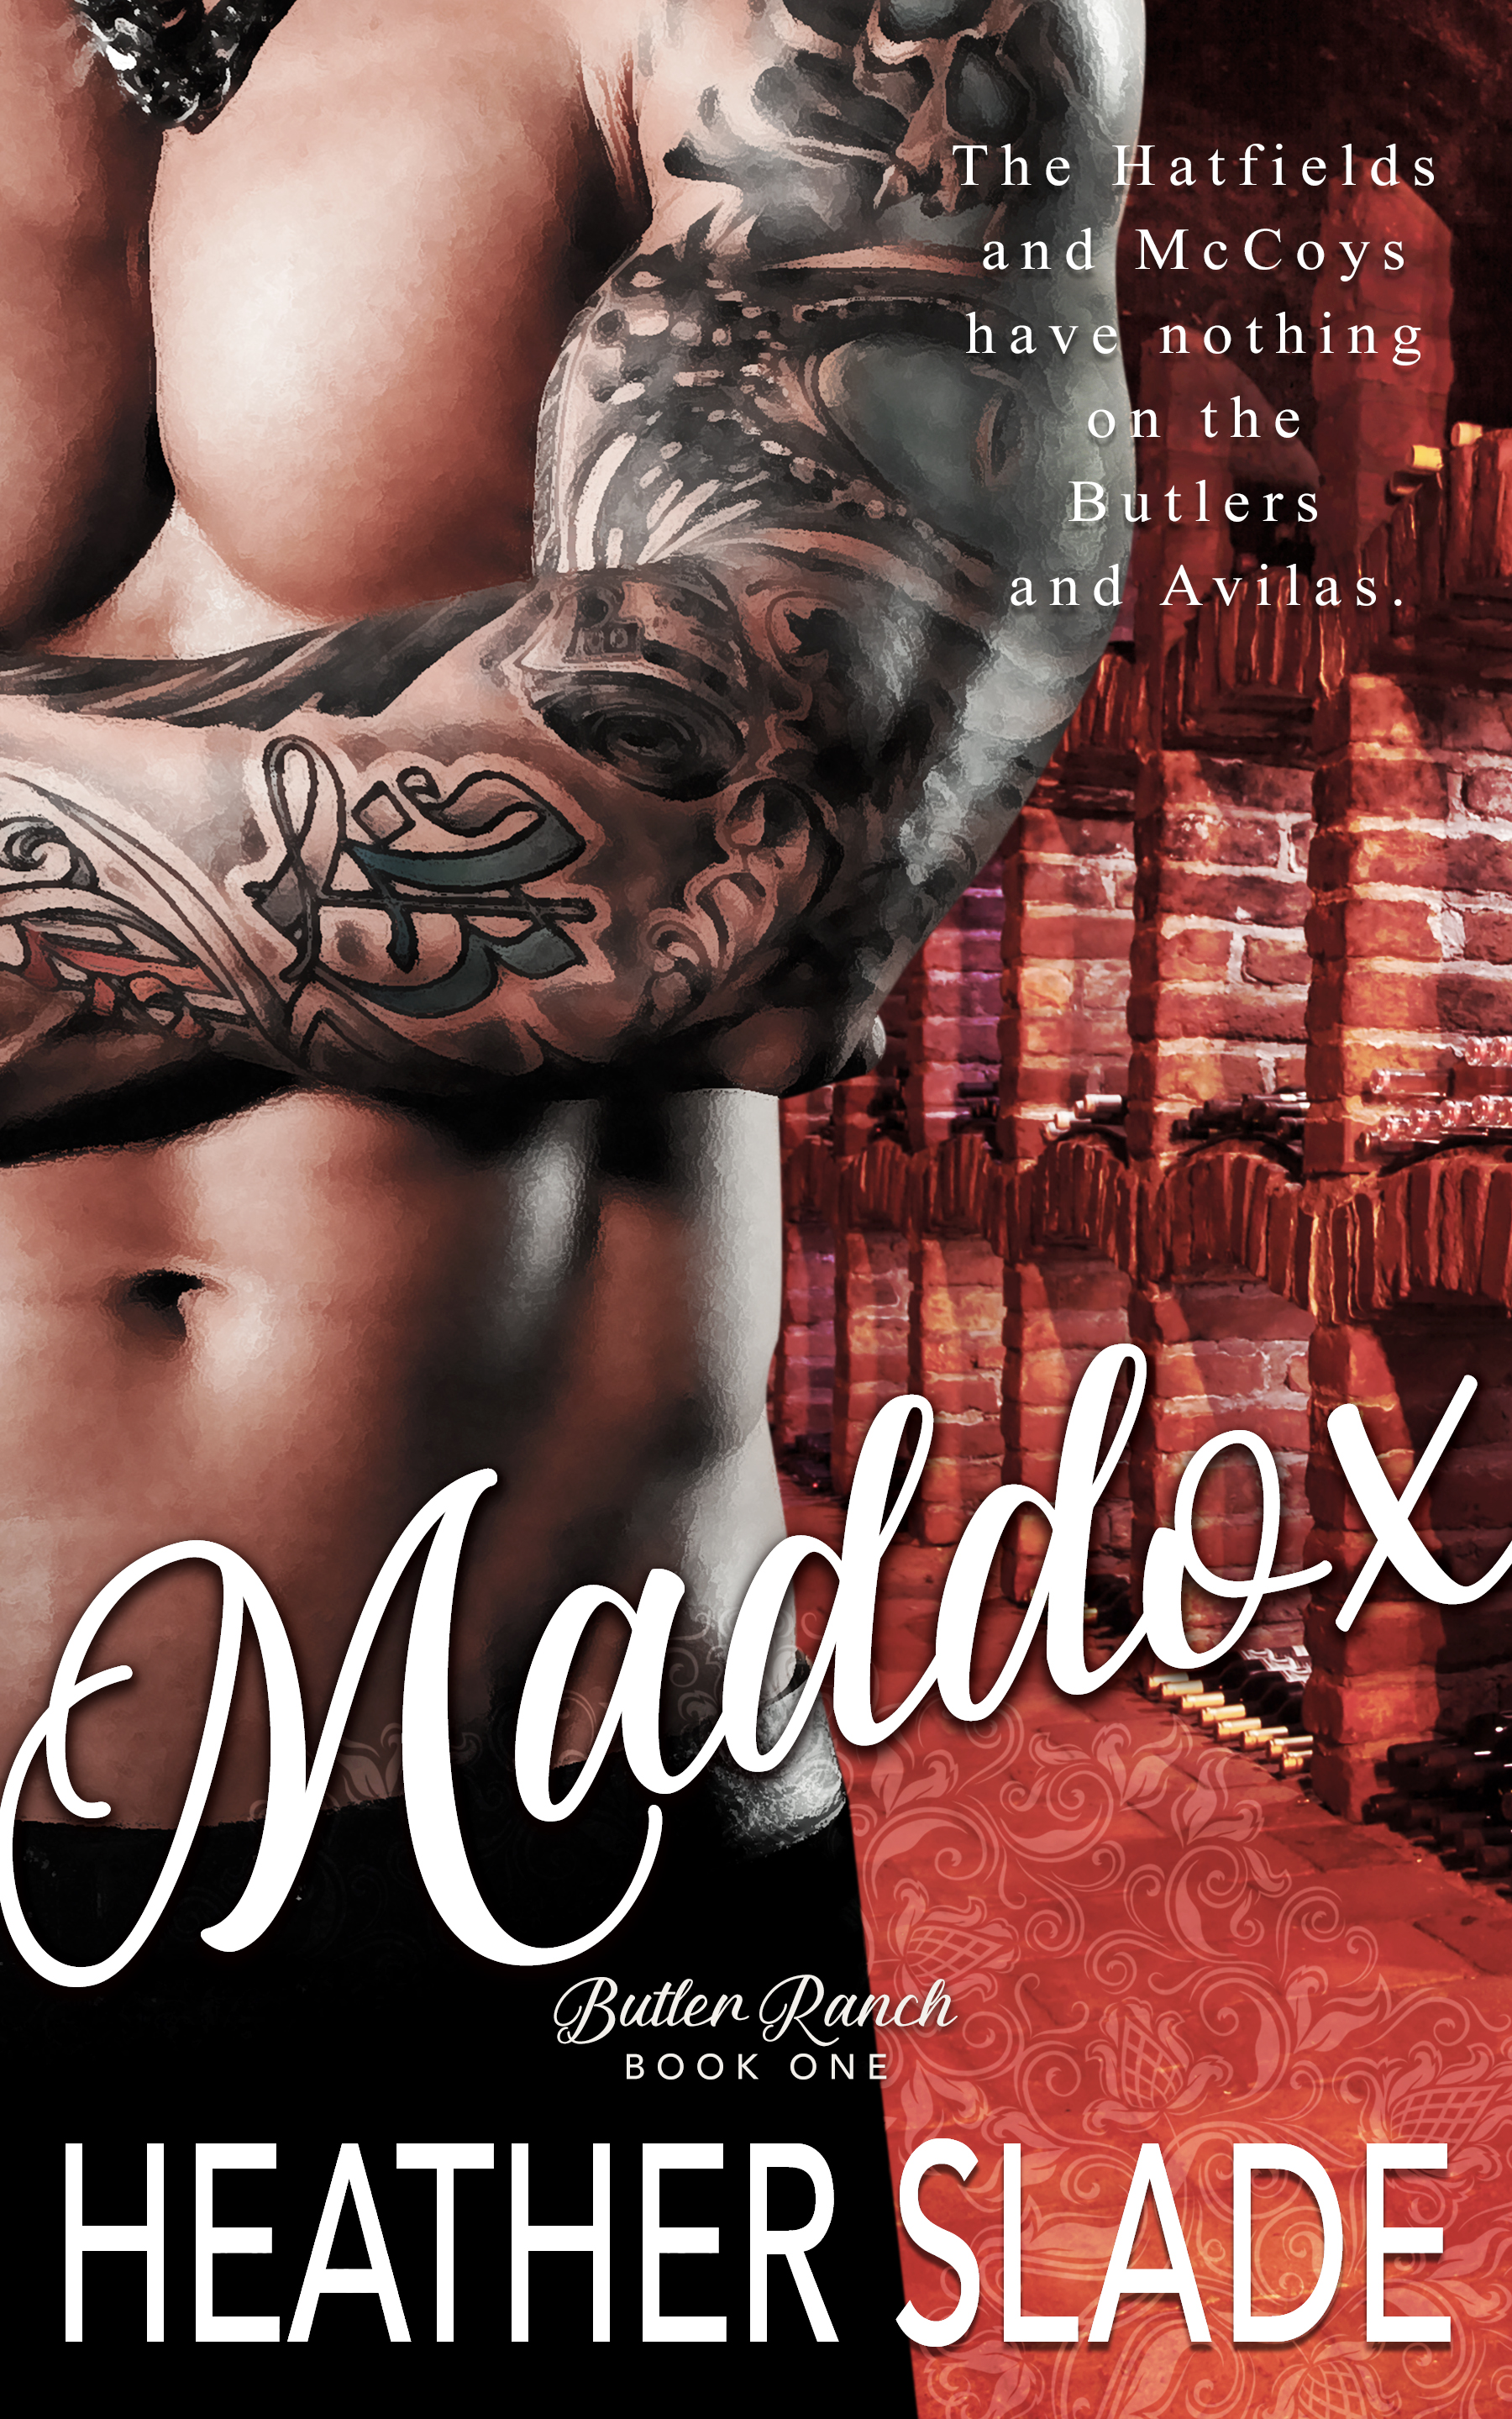 Maddox - the second book in the Butler Ranch Series by Heather Slade #romance #romanticsuspense #suspense #mystery #specialforces #military #marines #mercer #heatherslade #butlerranch #butlerranchseries #series #saga #wine #winery #wineries #vineyards #pasorobles #montecito #mi6 #kgb #kade #brodie #naughton #ainsley #mercer #k19securitysolutions #k19 #k19sss